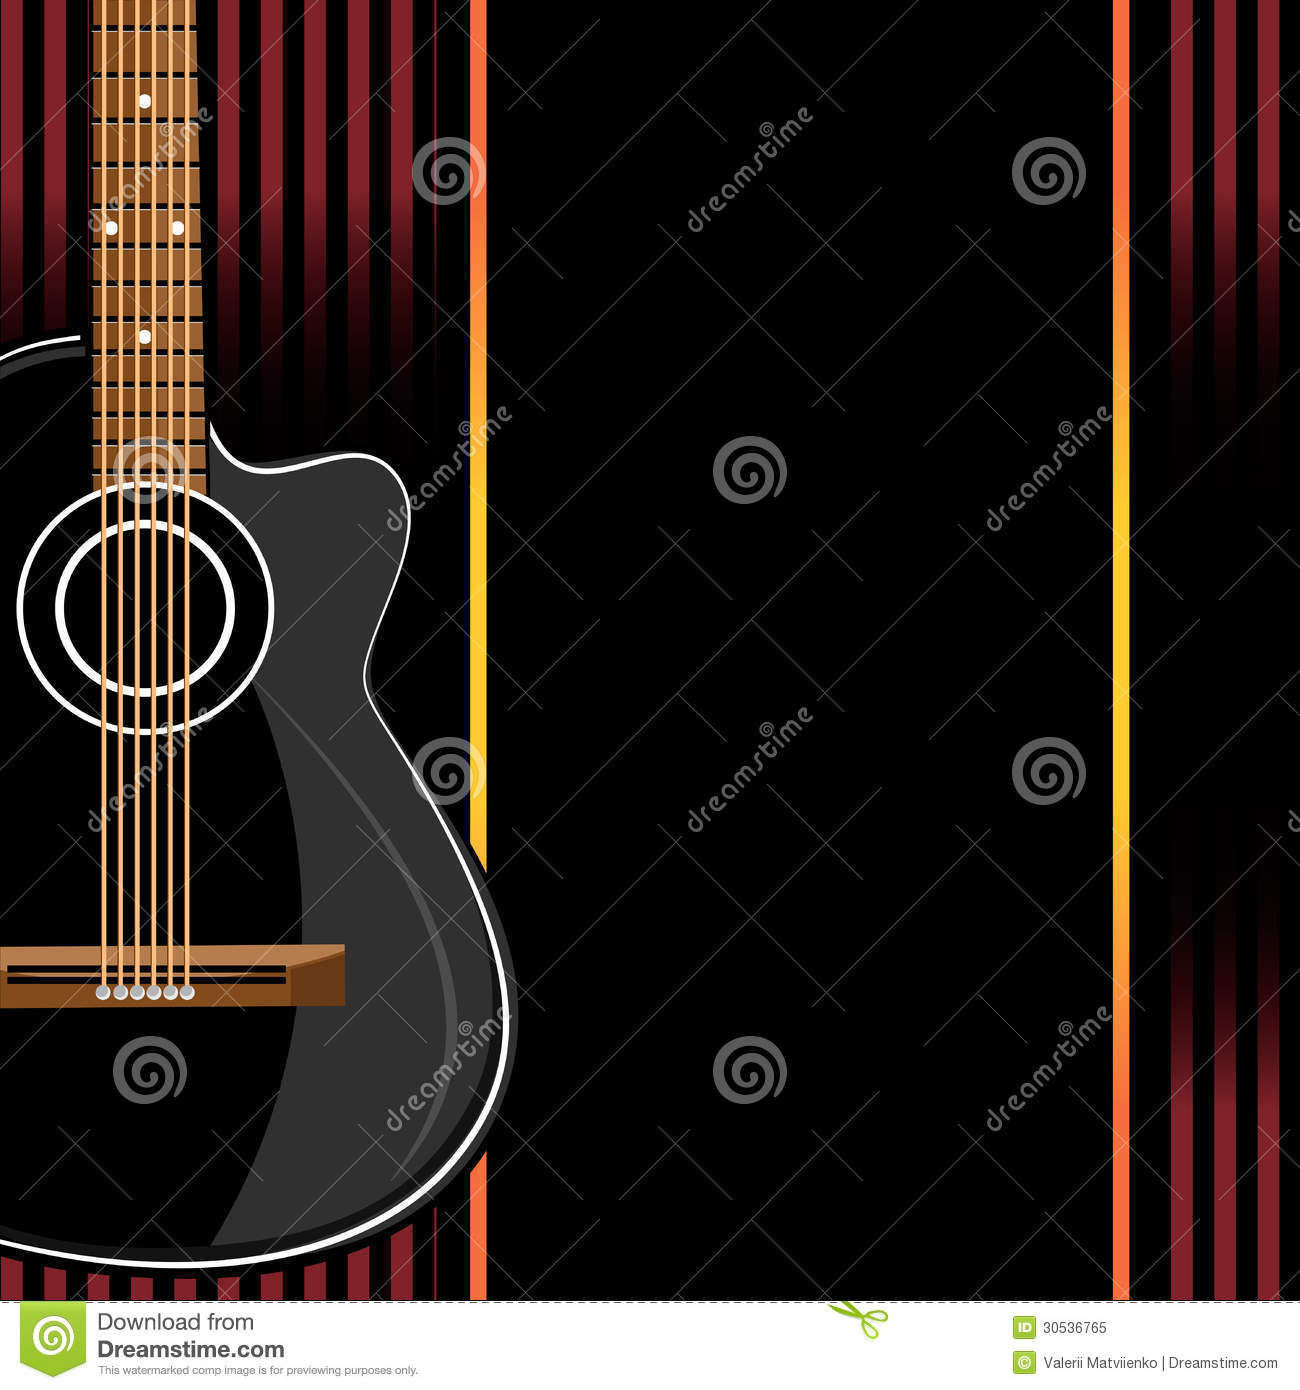 music time guitar abstract - photo #10